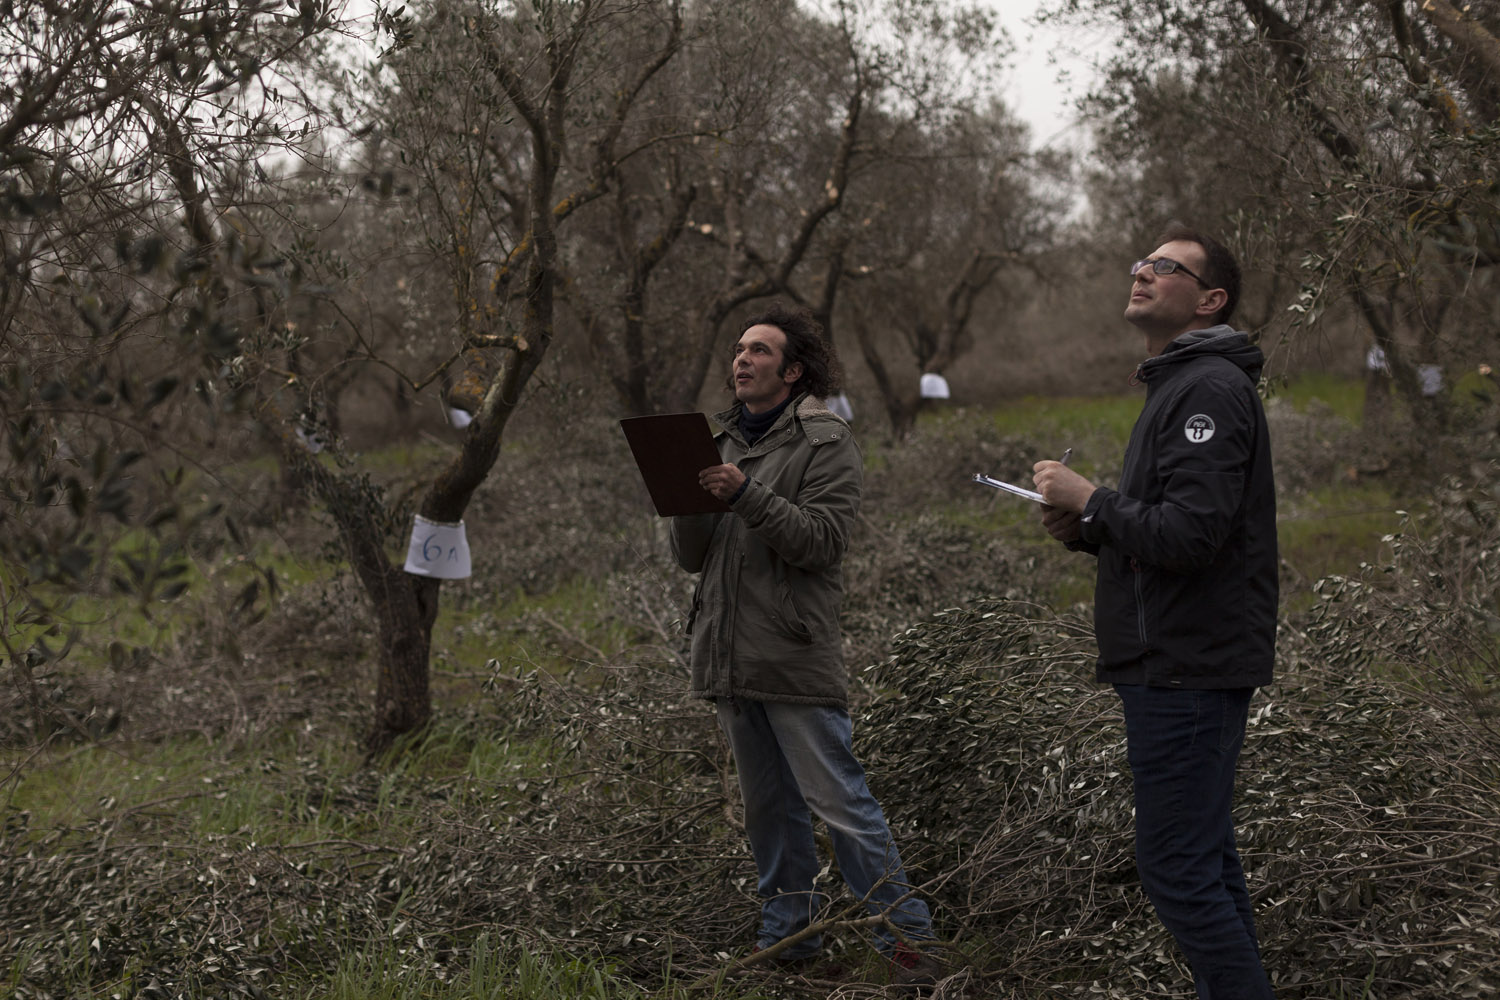 Judging the results of Puglia's regional championship for policonic-vase pruners, in an educational farm confiscated from the mafia in San Vito dei Normanni. (2017)